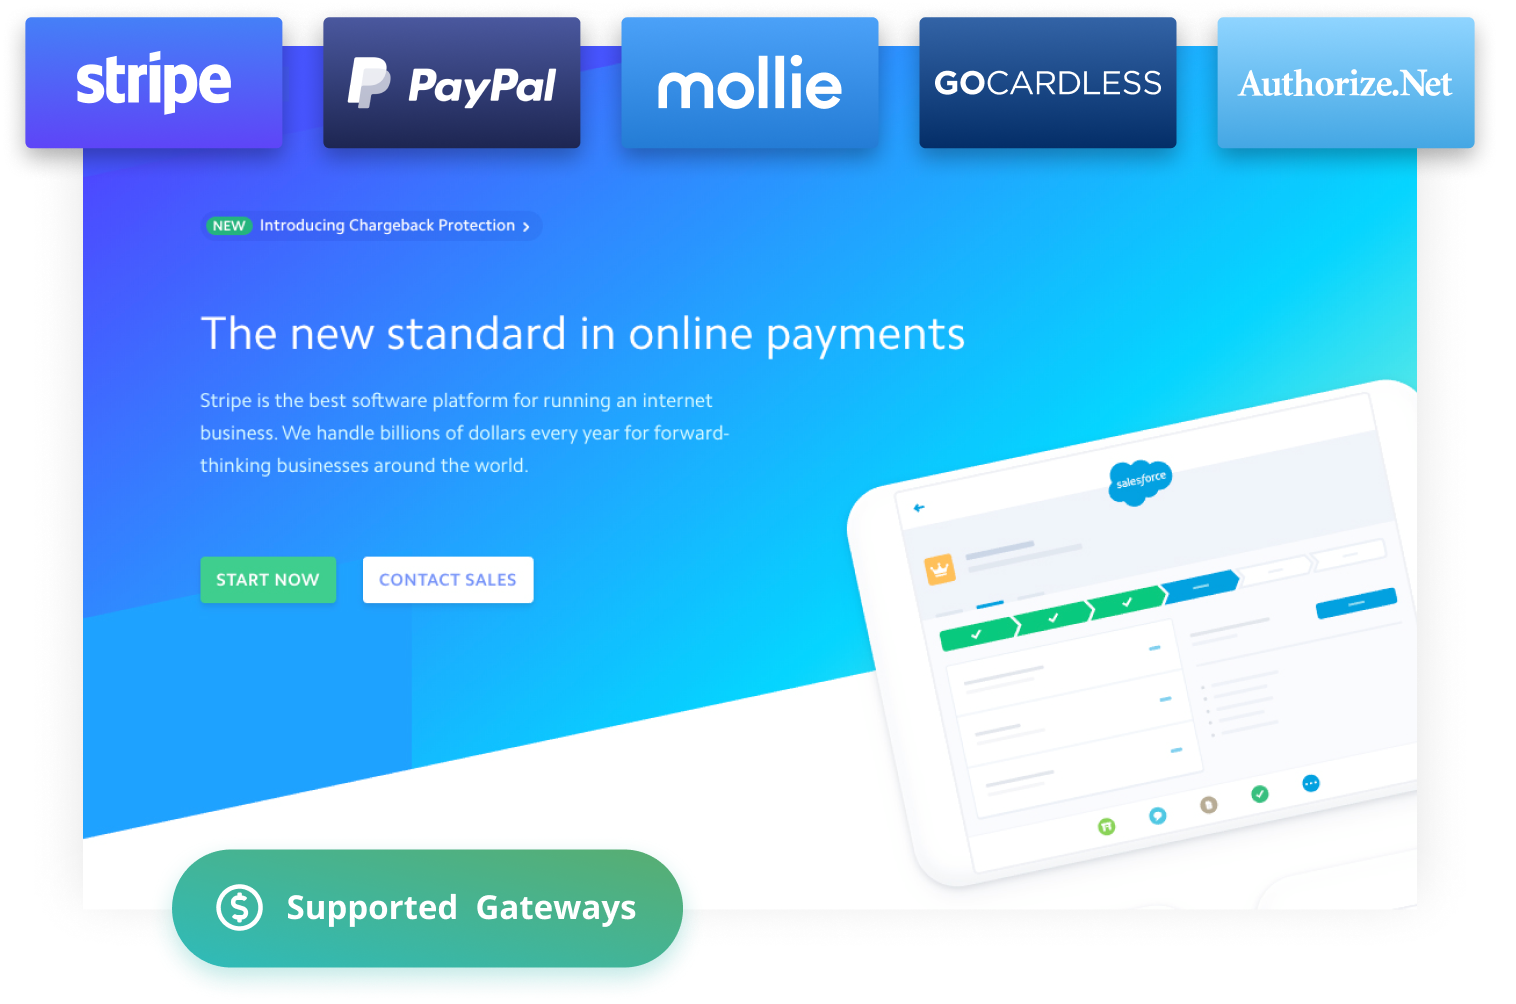 Use Stripe recurring donations, paypal recurring donations, or connect to other gateways that are compatible with subscription donations, like Mollie, GoCardless, and Authorize.Net